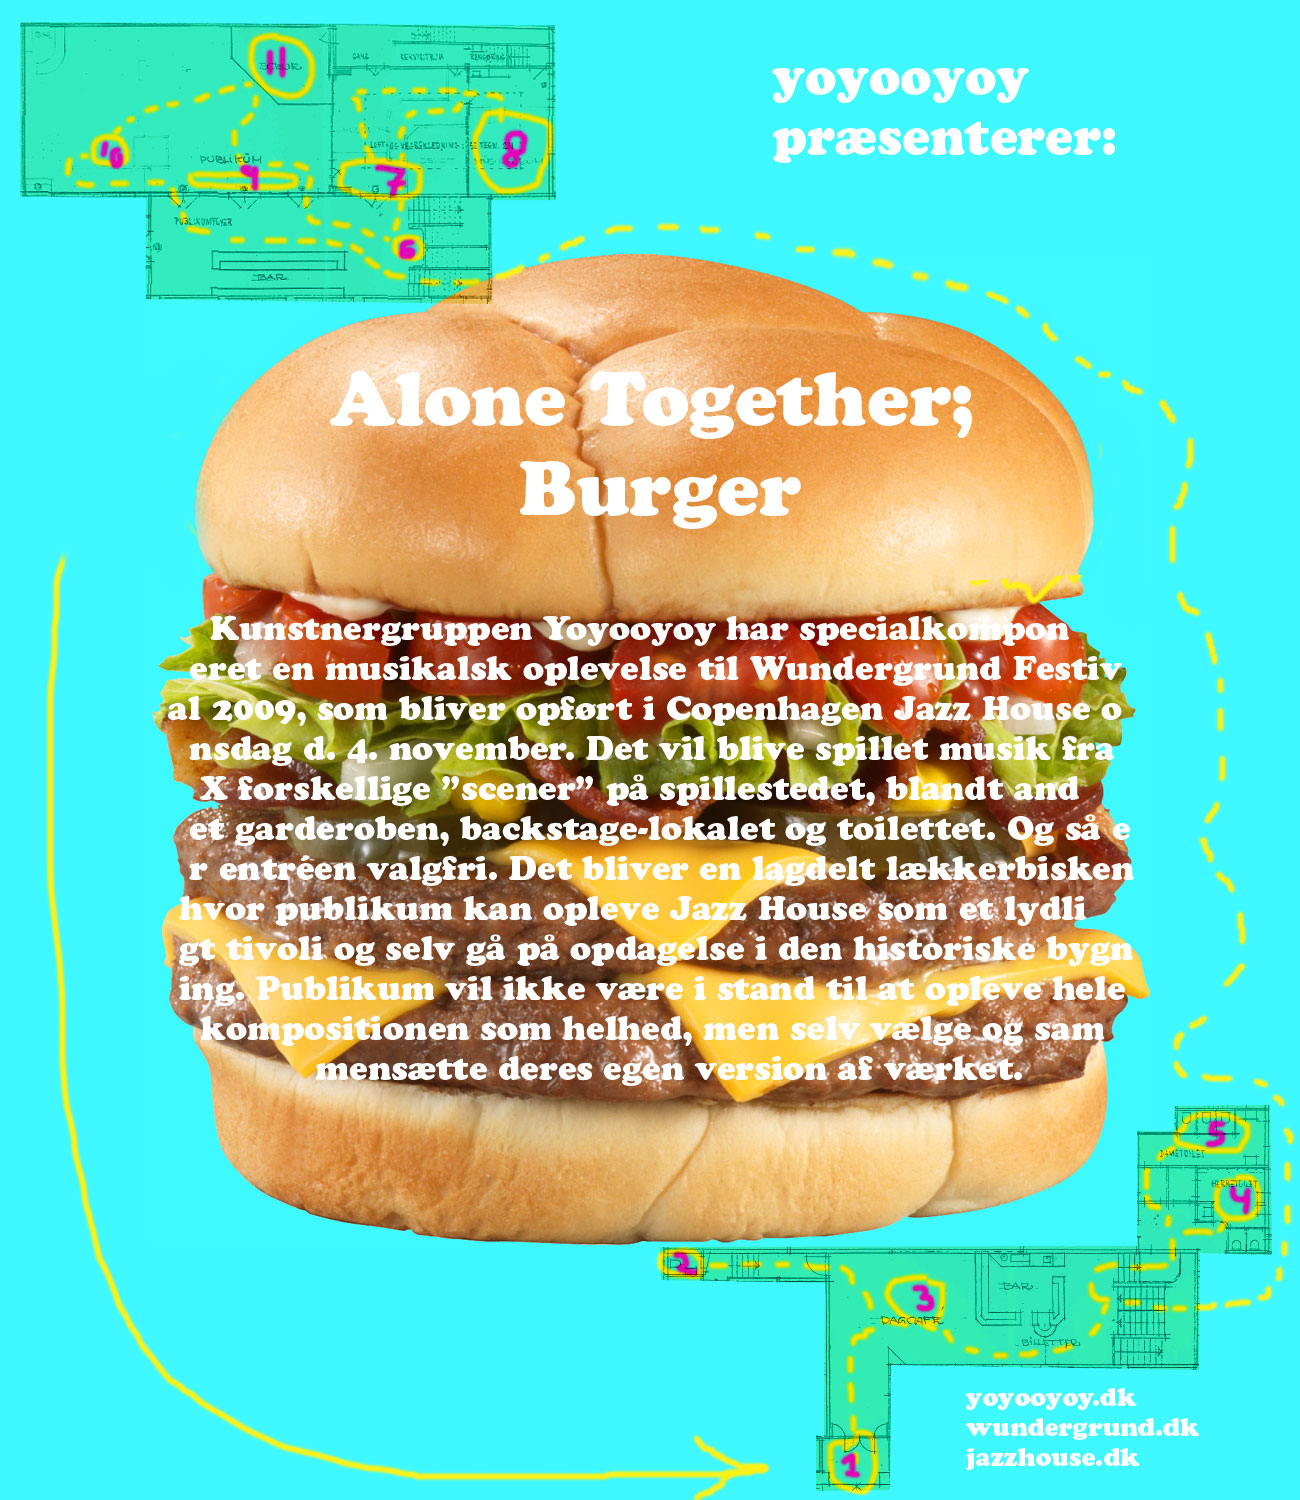 yoyooyoy alone together burger